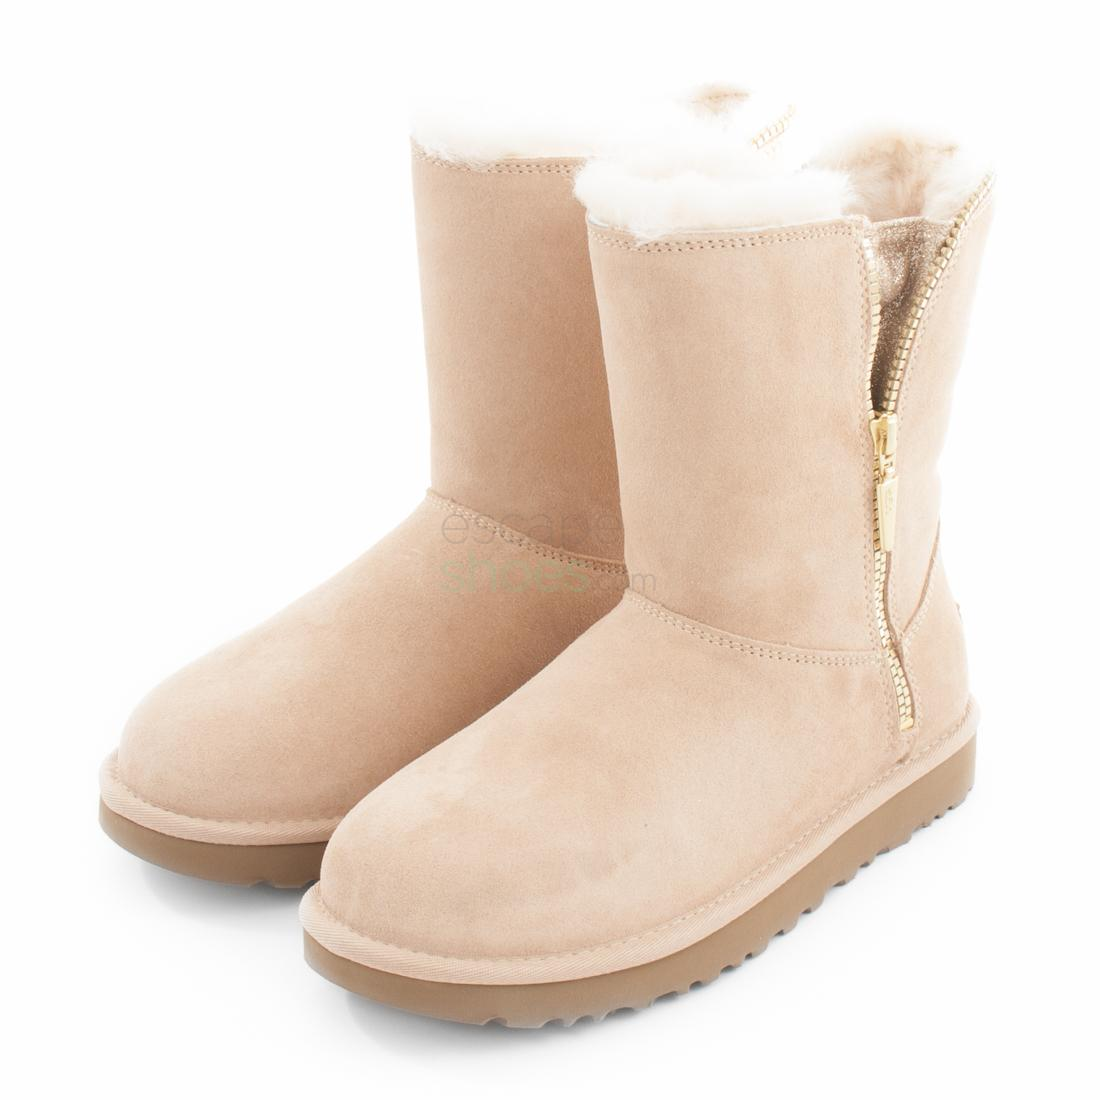 83c2e14d9be Buy your Boots UGG Australia Marice Driftwood 1019633 here | Online ...